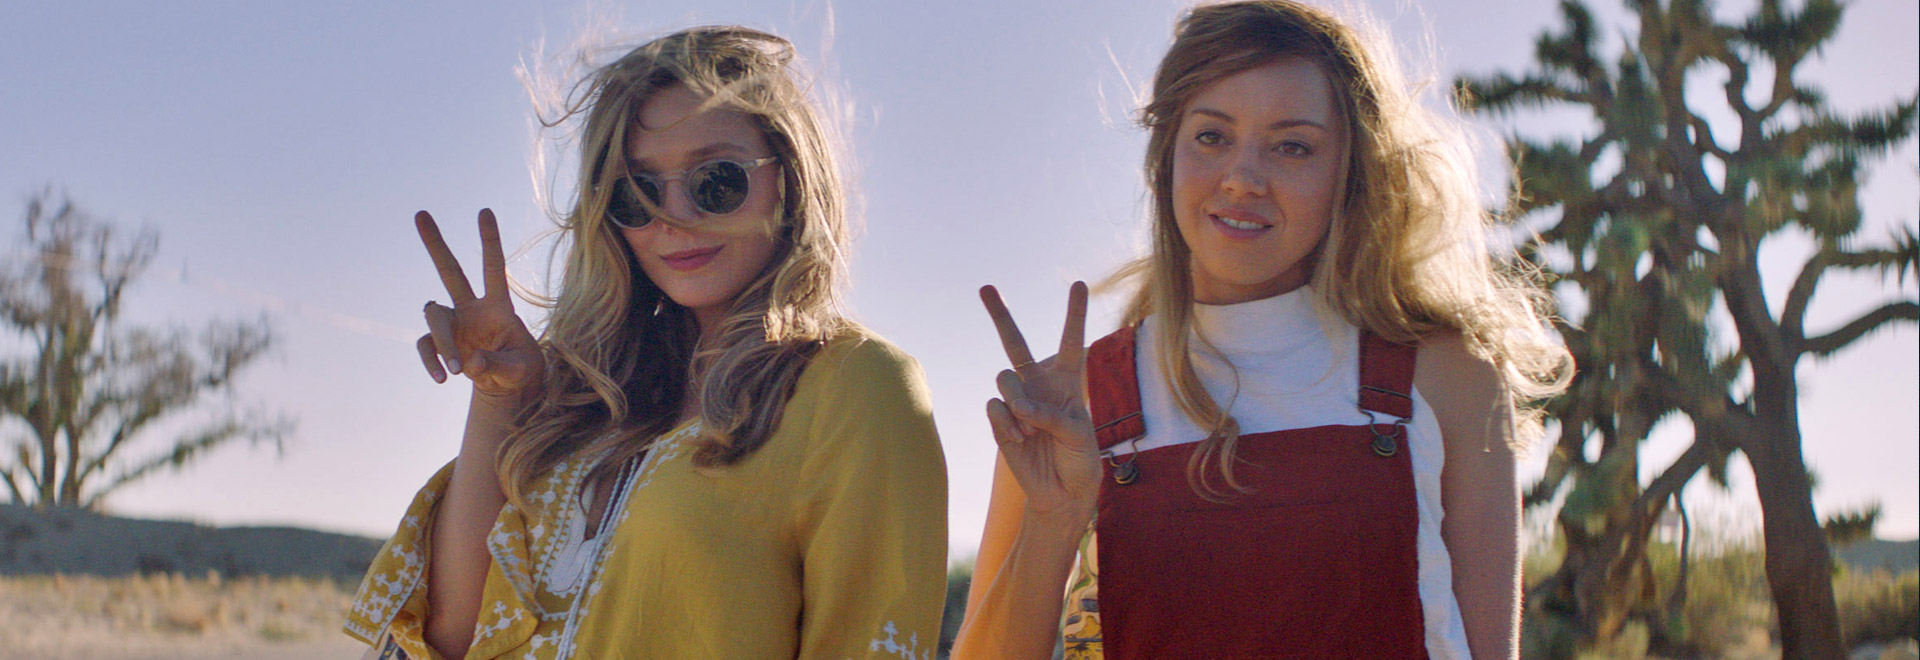 Ingrid Goes West - Join the wide ride